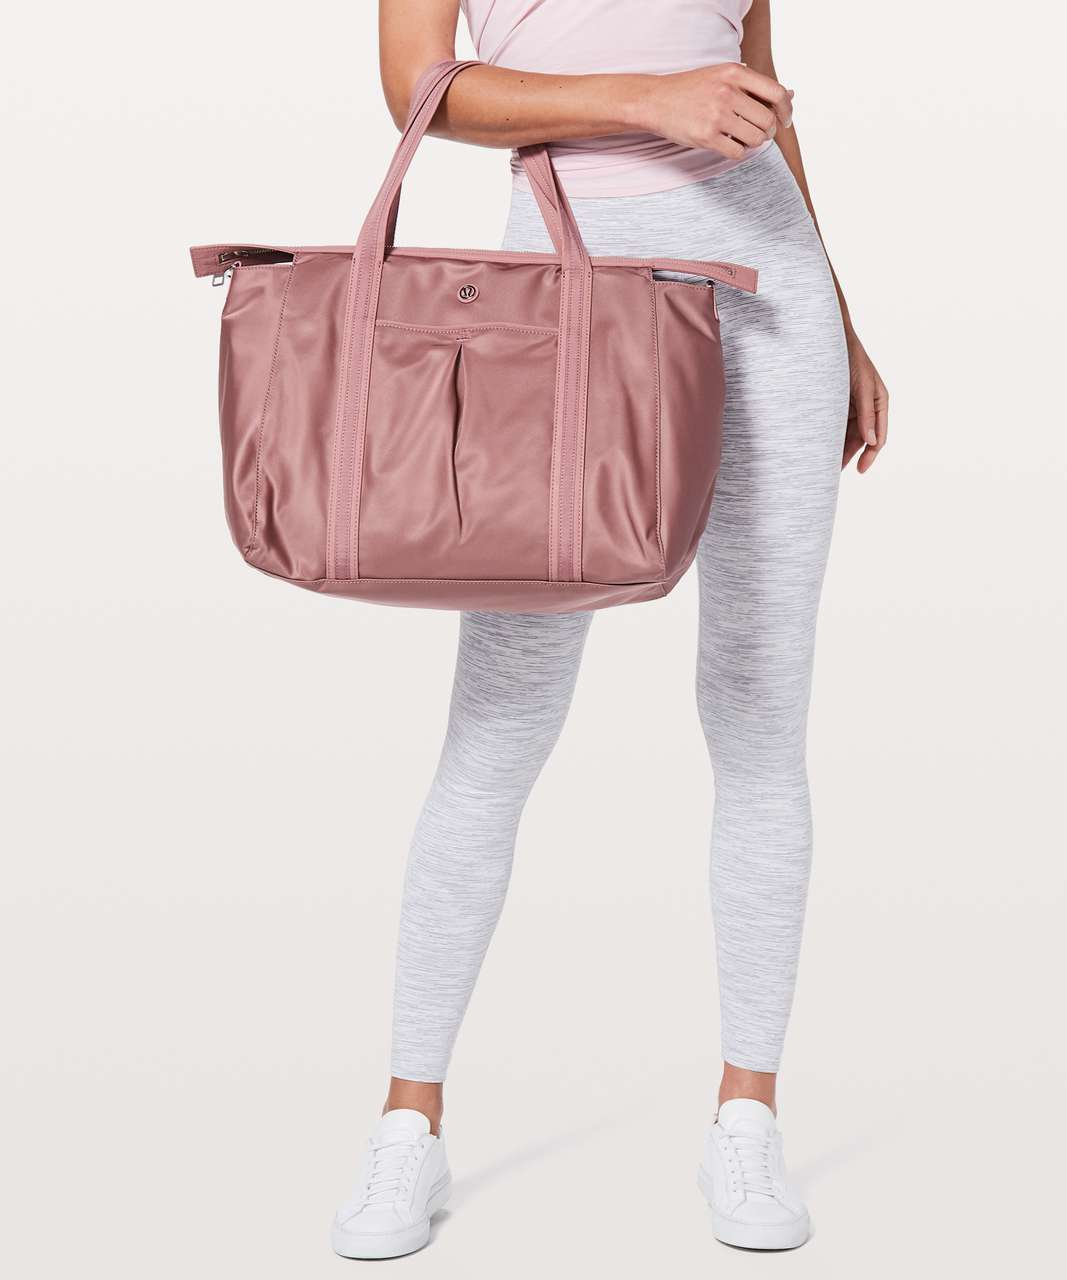 Lululemon Everywhere Bag *23L - Quicksand